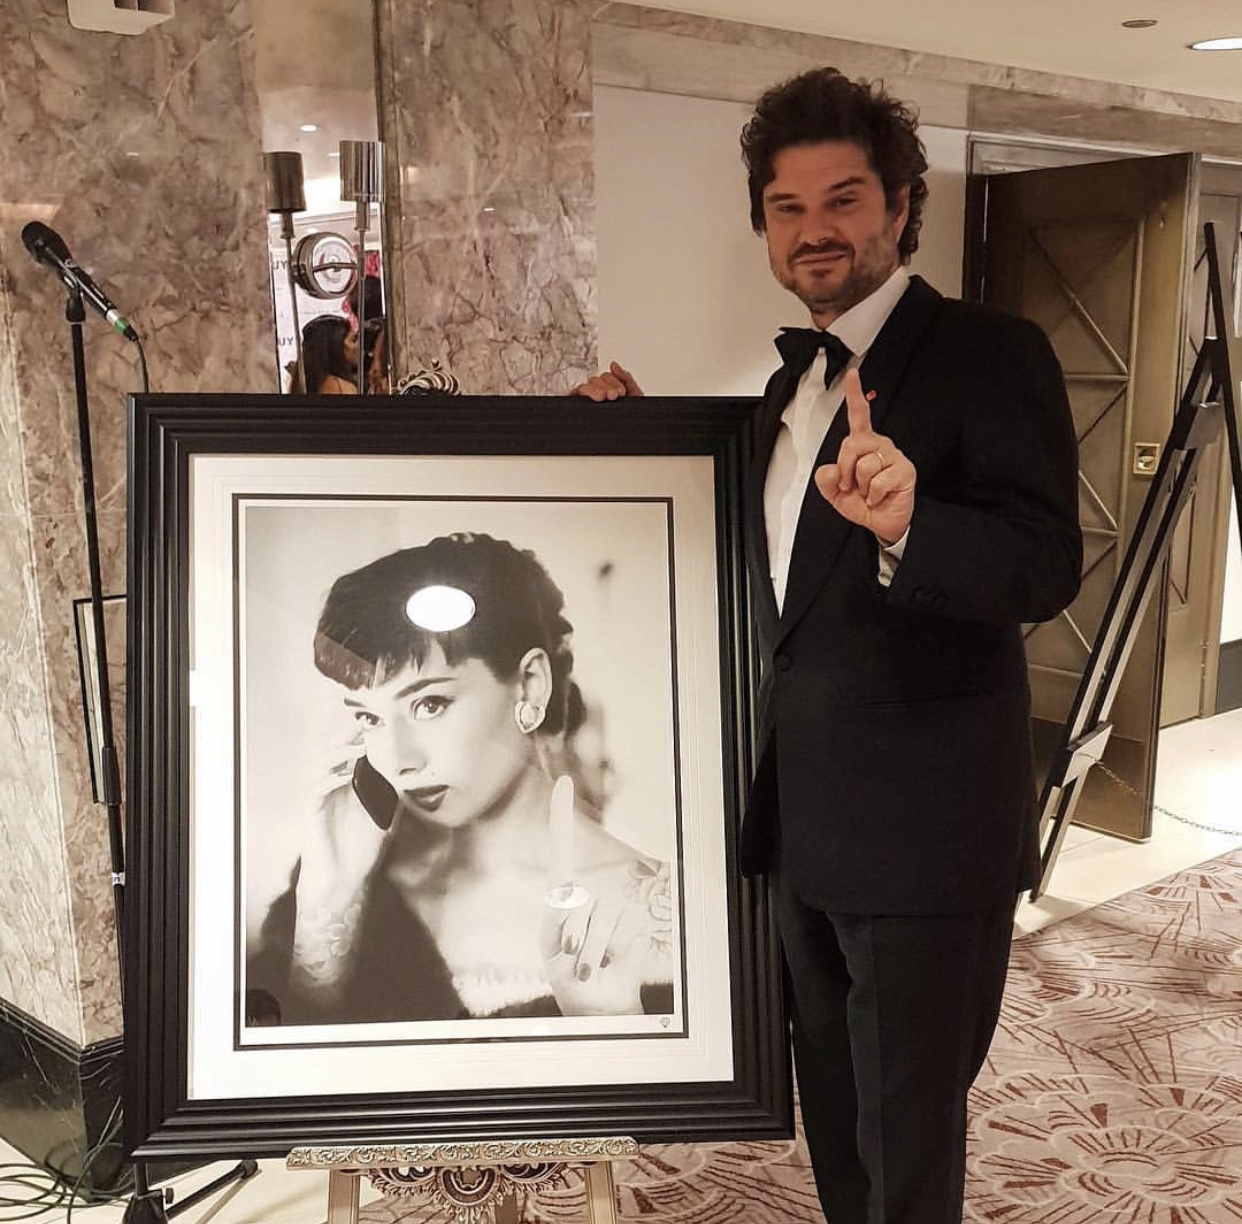 Audrey Hepburns son, Luca Dotti with one of JJ's pieces.